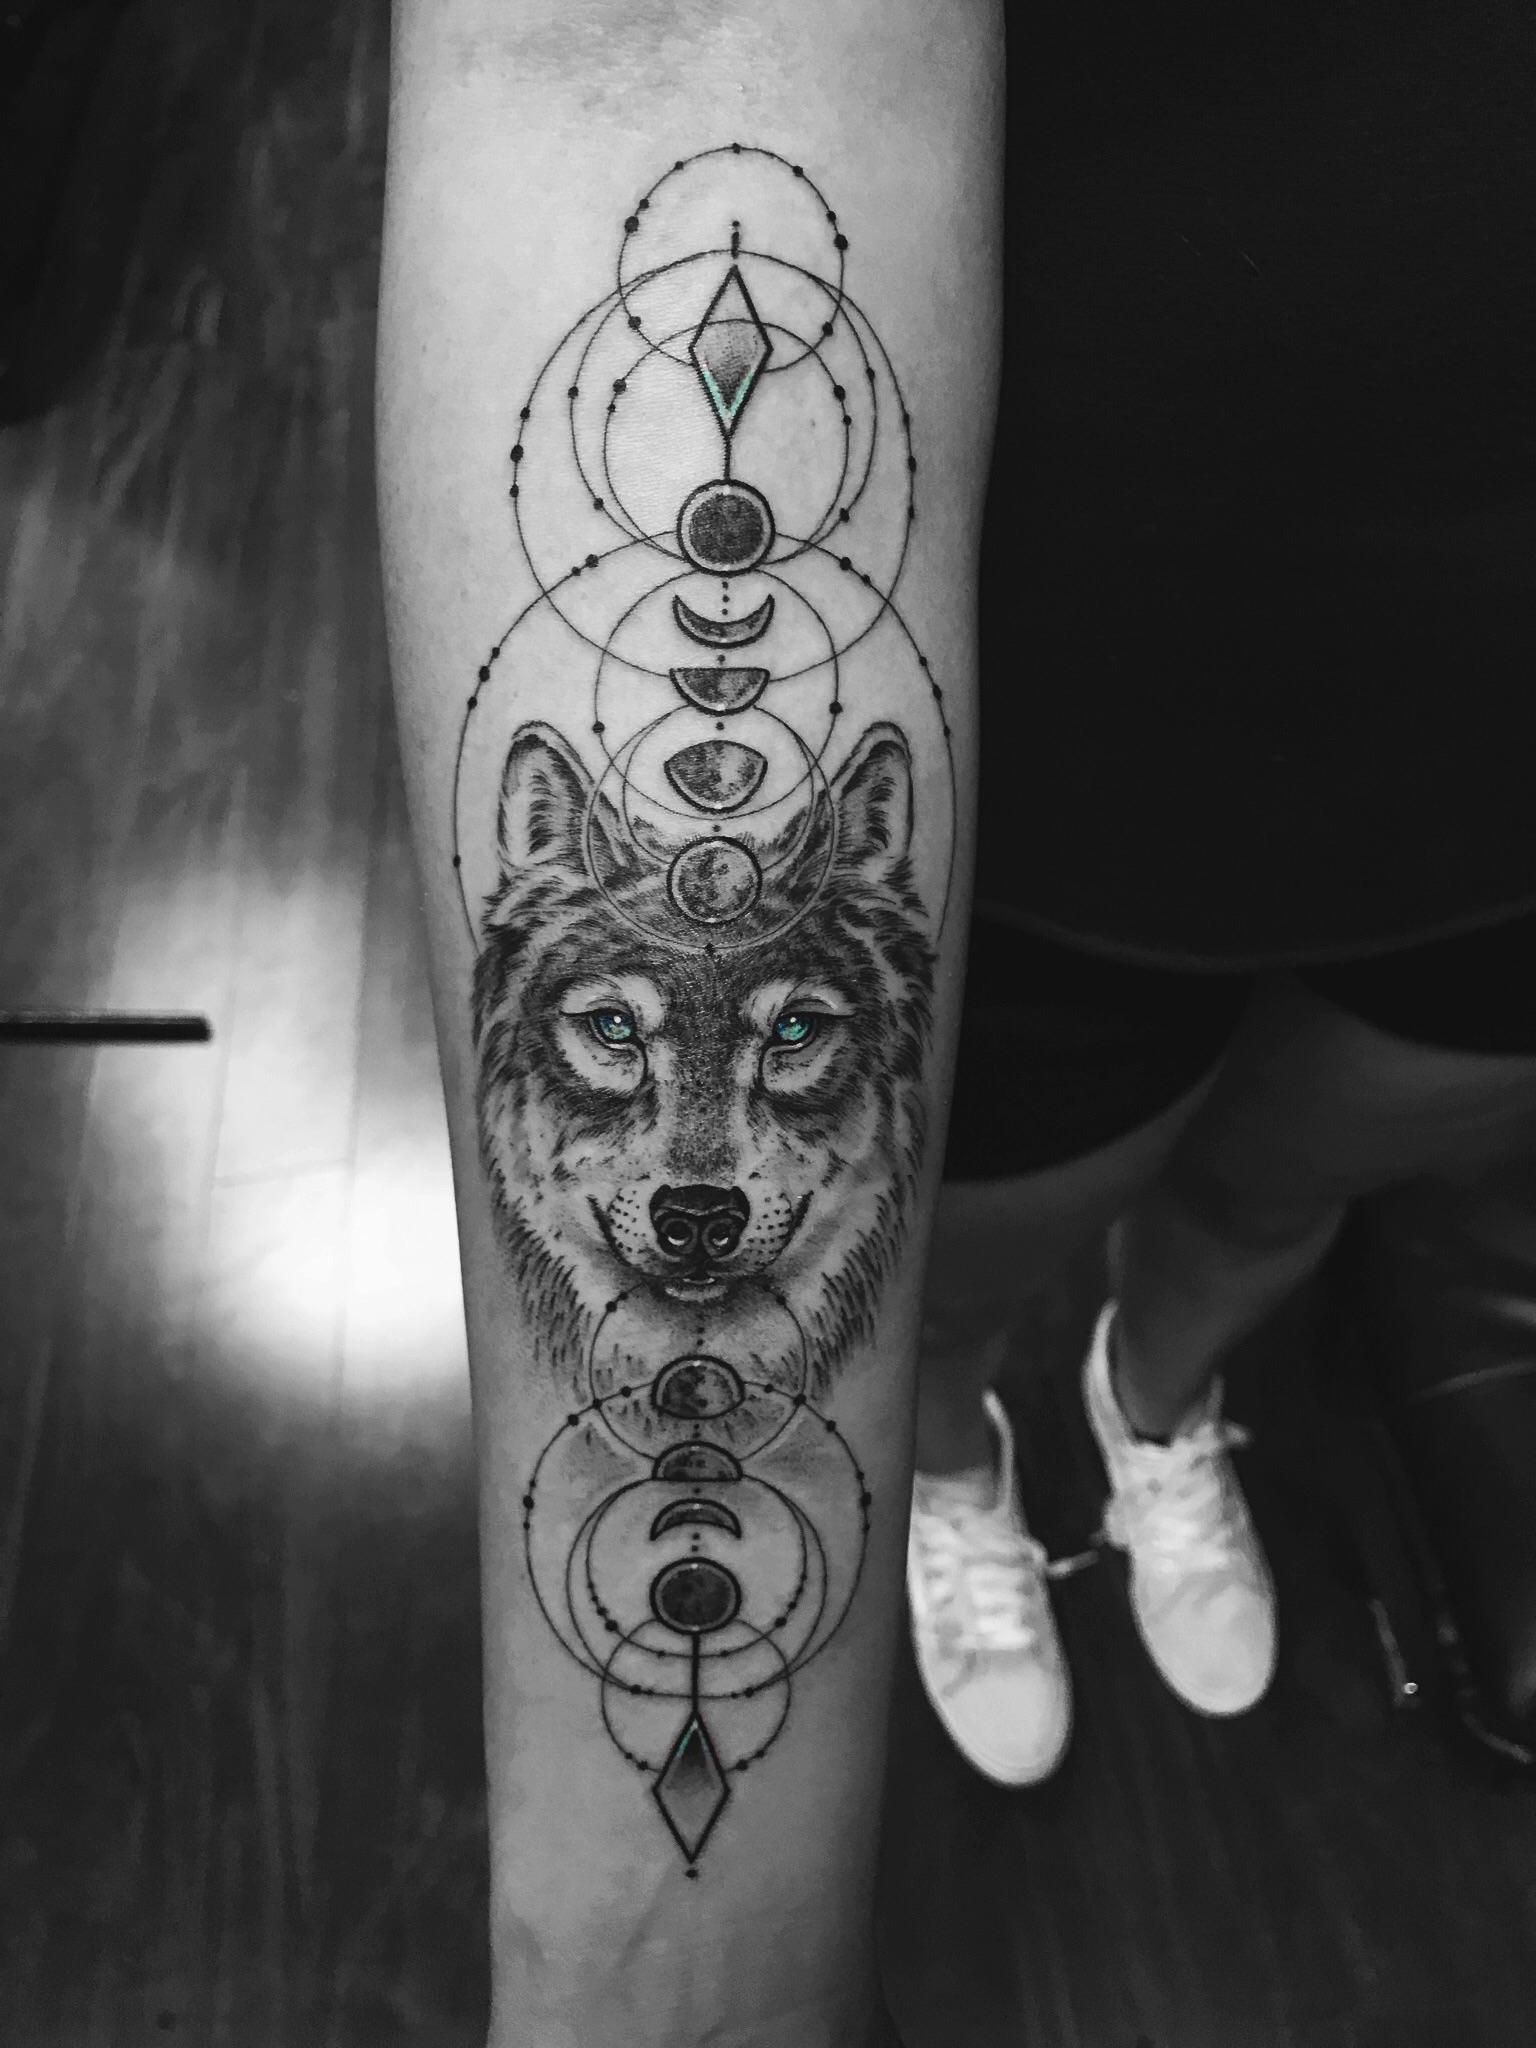 Done by Daniel Silva The Rock Zone in Gilroy CA